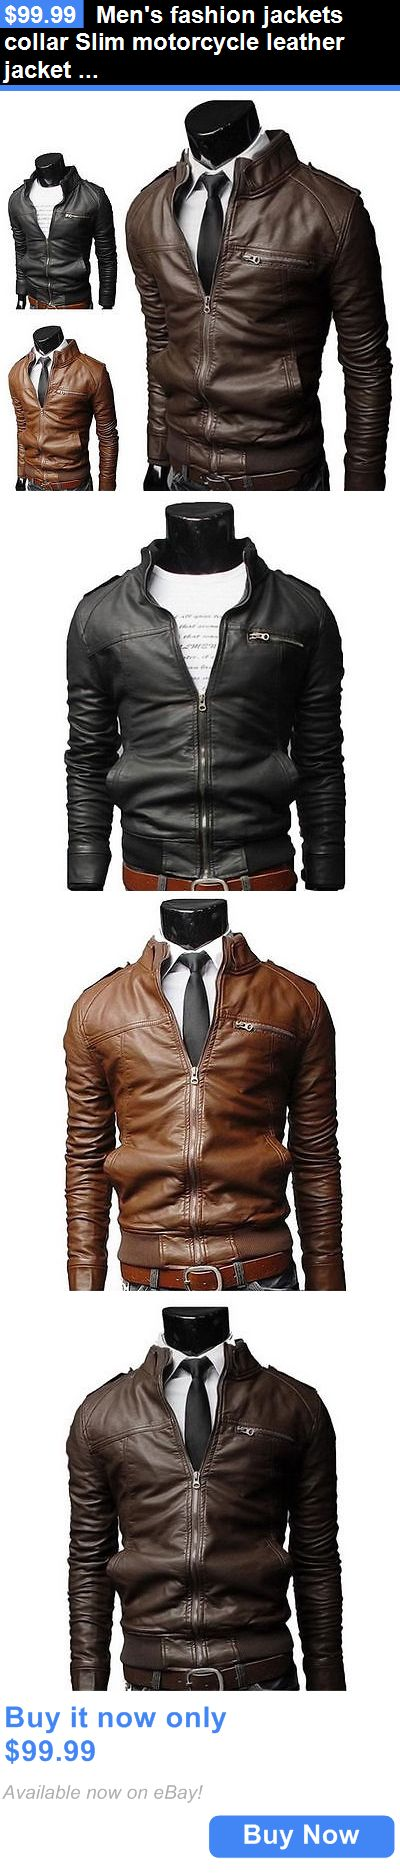 Men Coats And Jackets: Mens Fashion Jackets Collar Slim Motorcycle Leather Jacket Coat Outwear Hot Zo BUY IT NOW ONLY: $99.99